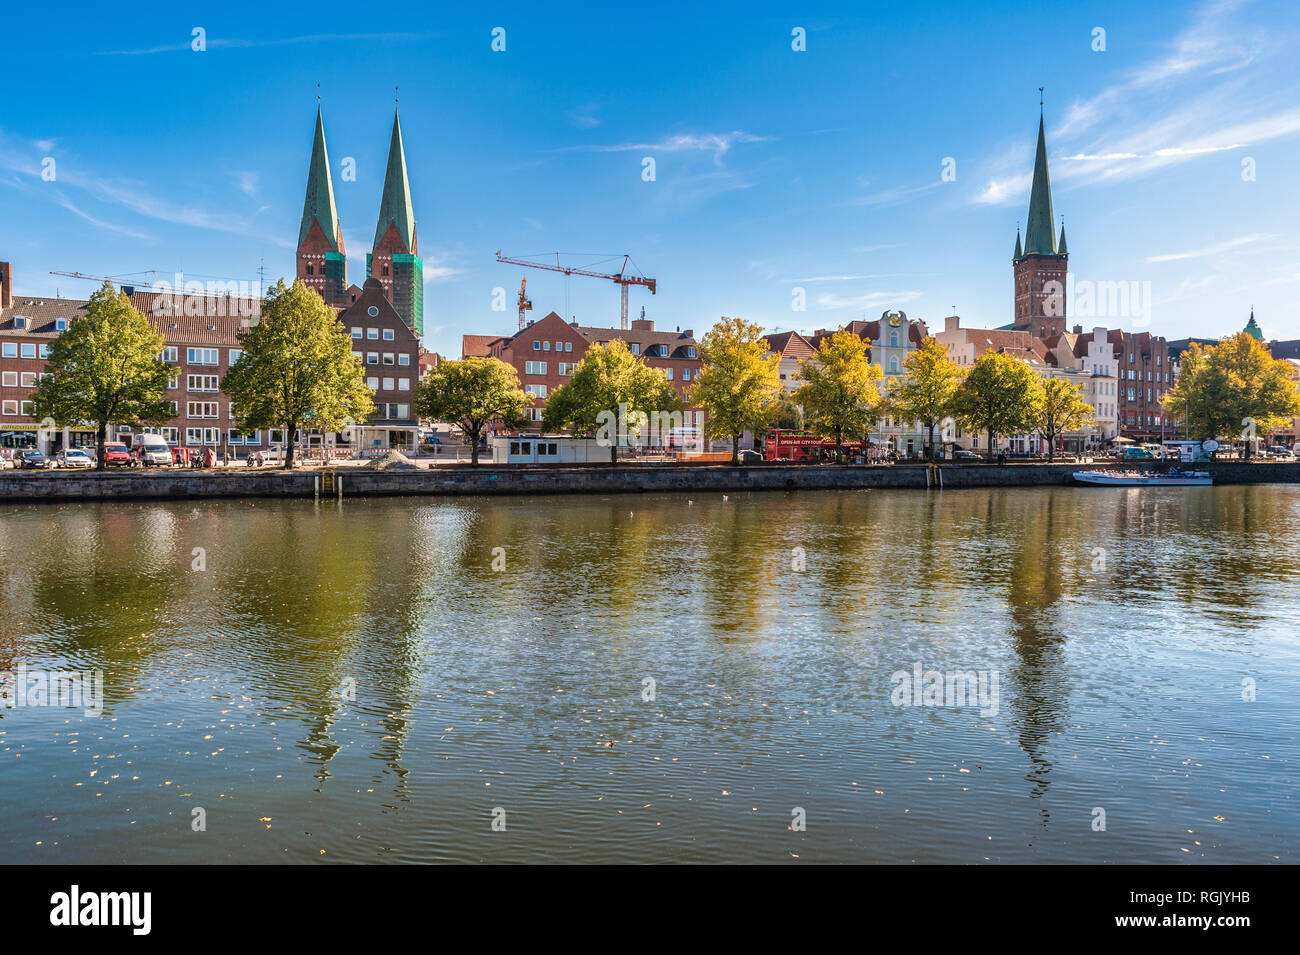 Germany, Schleswig-Holstein, Luebeck, Lower Trave river, St. Mary's Church and St. Petri church - Stock Image